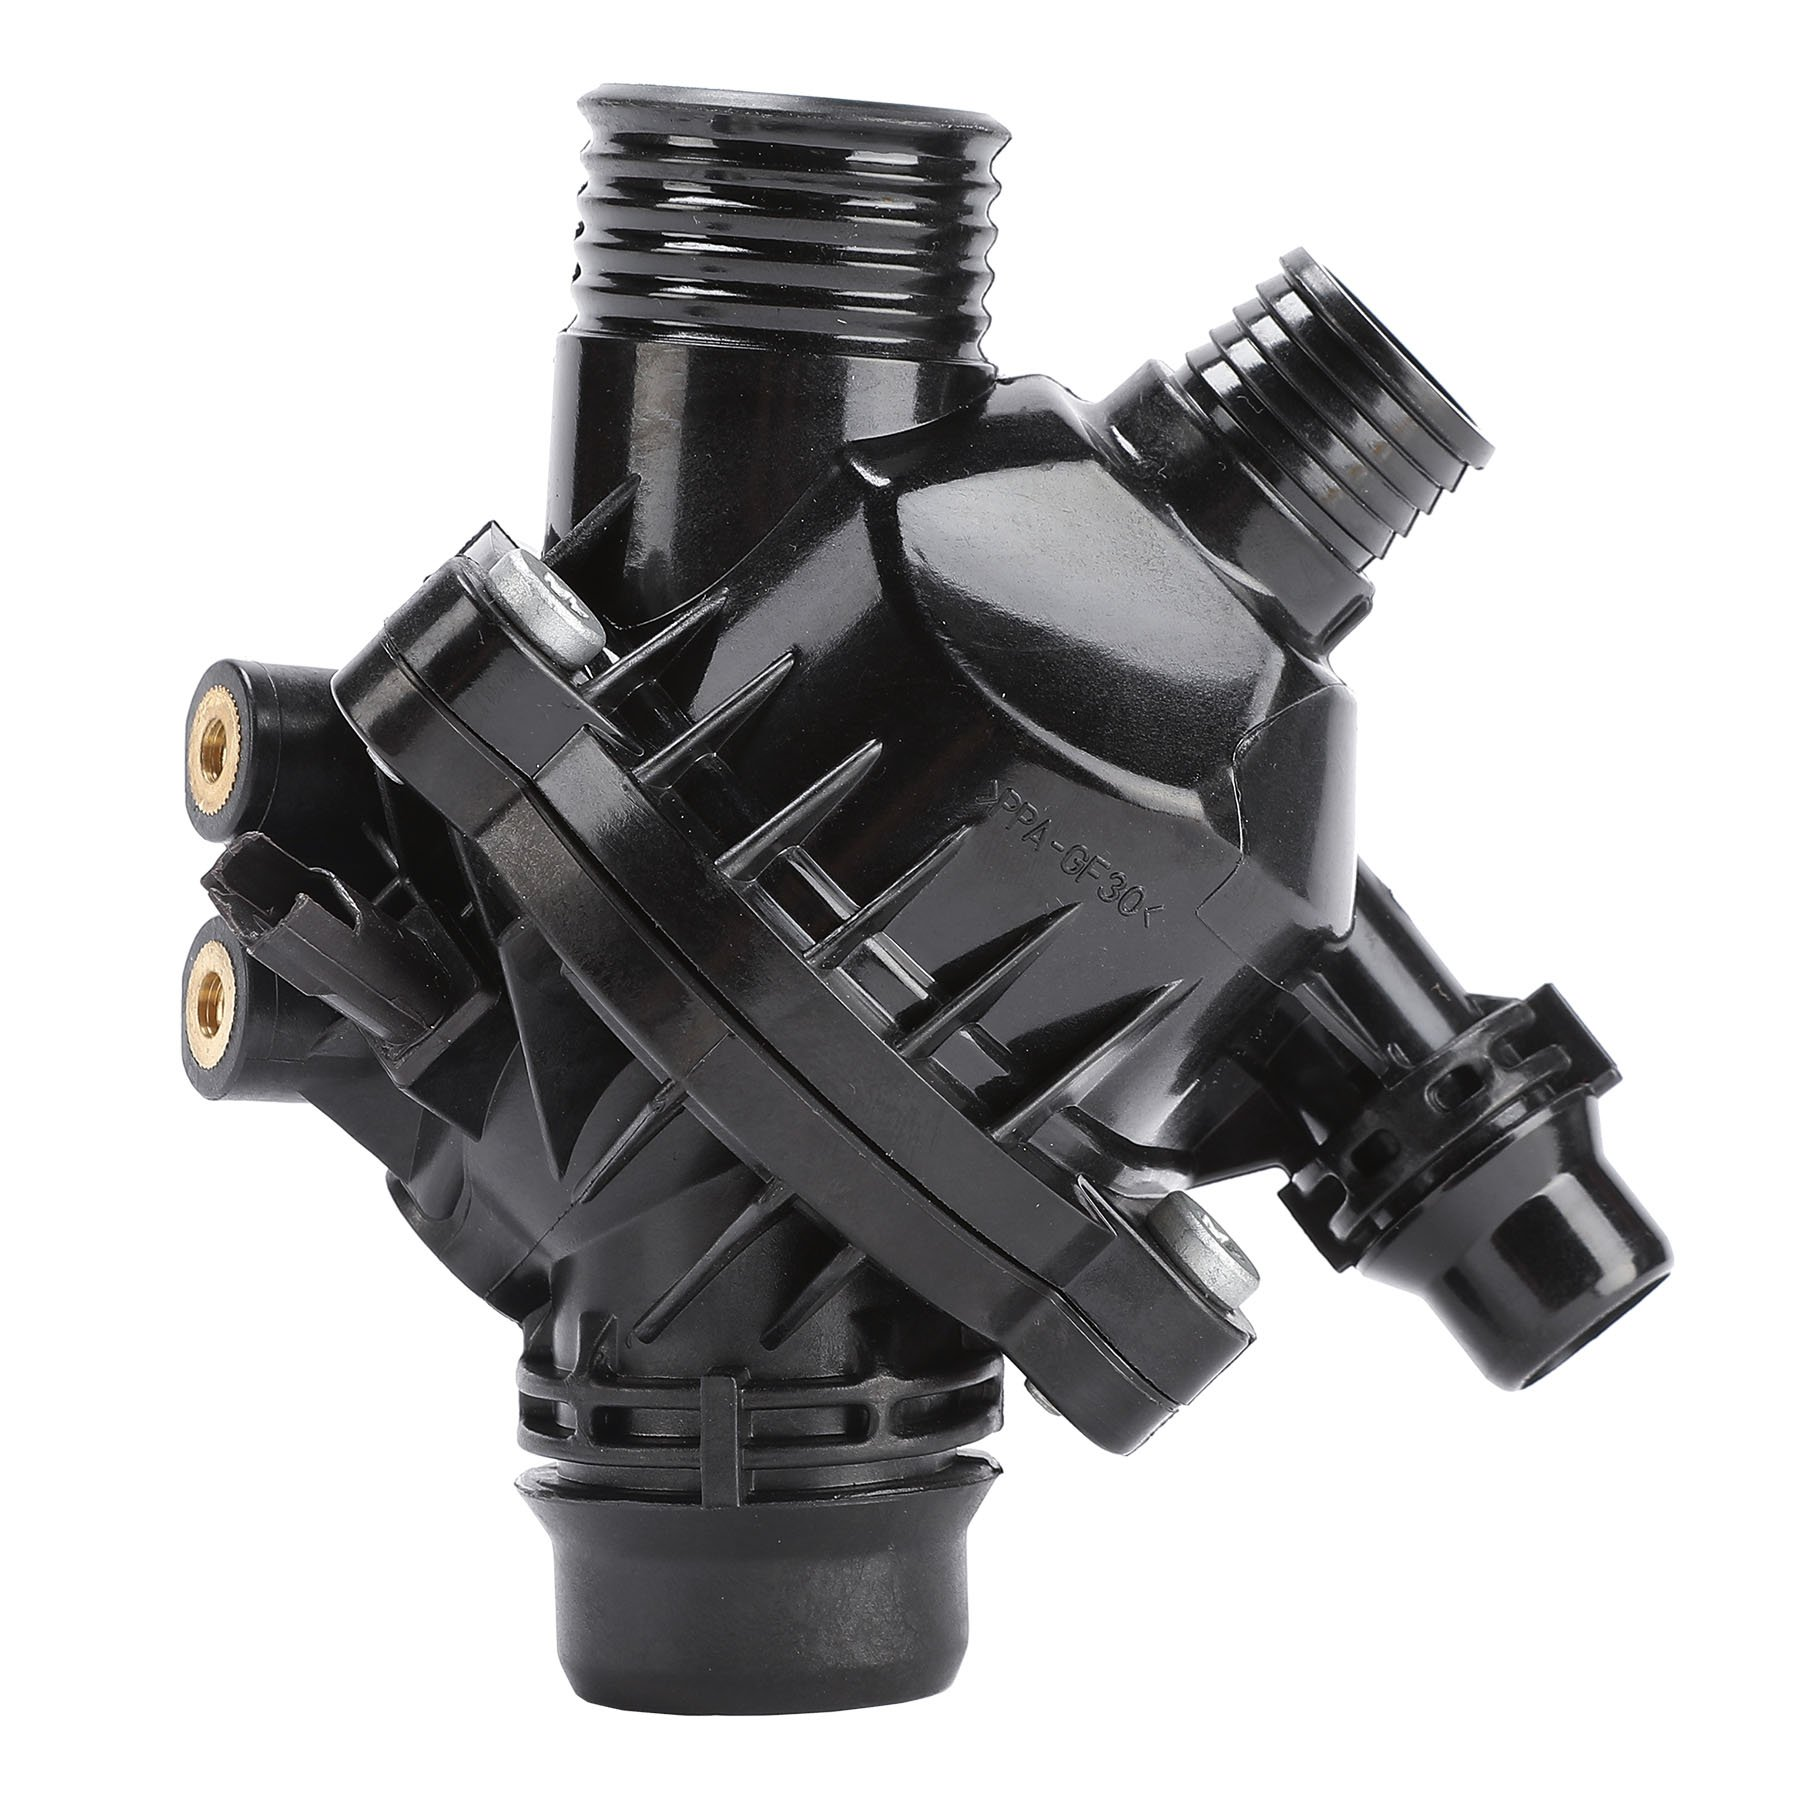 Orion Motor Tech Engine Coolant Thermostat W/Housing Assembly Replacement with BMW Part 11537536655, 11537549476 11537544788, 1430826, 256201, 256202, 41008697D0 by OrionMotorTech